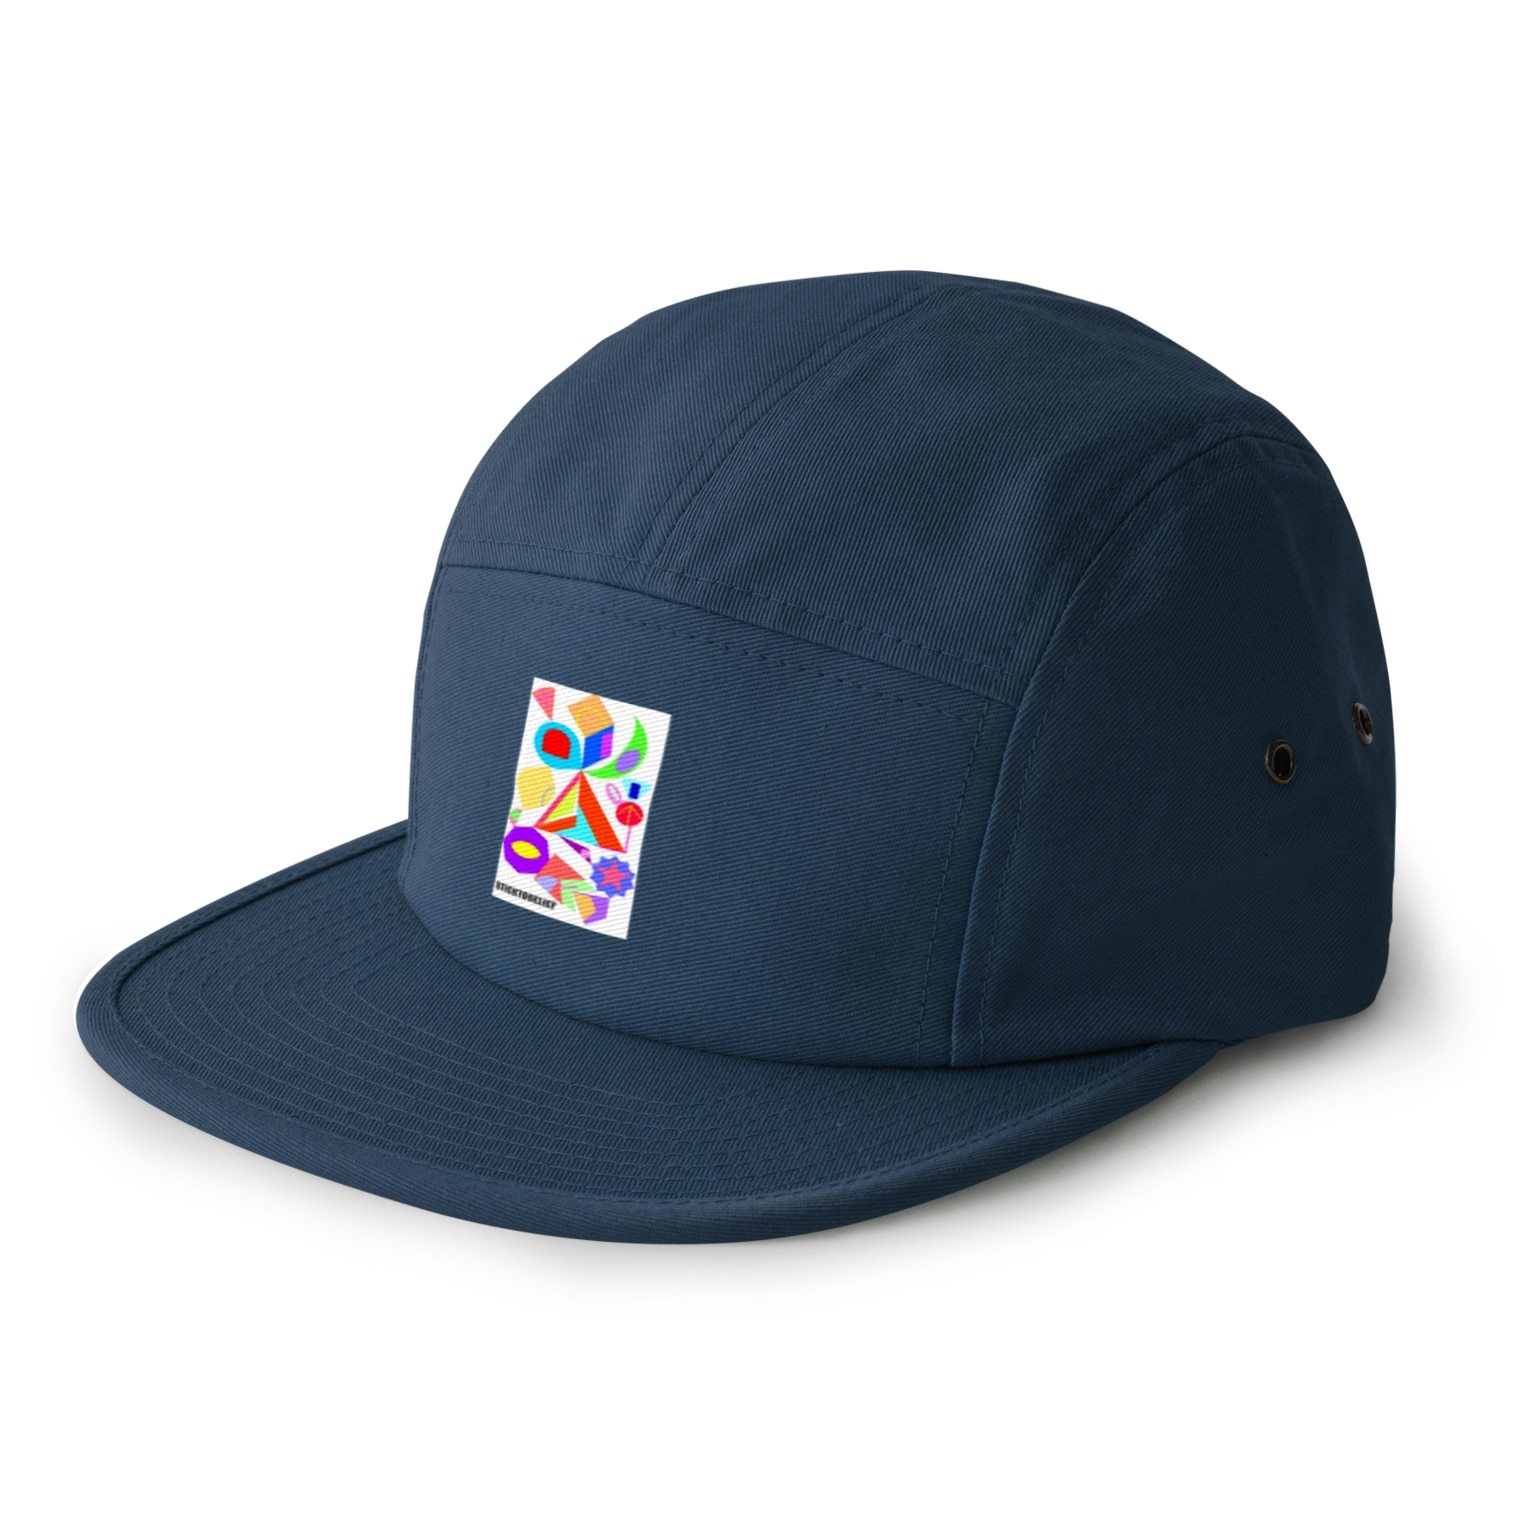 STICKTOBELIEFの自己主張🌈 5 panel caps